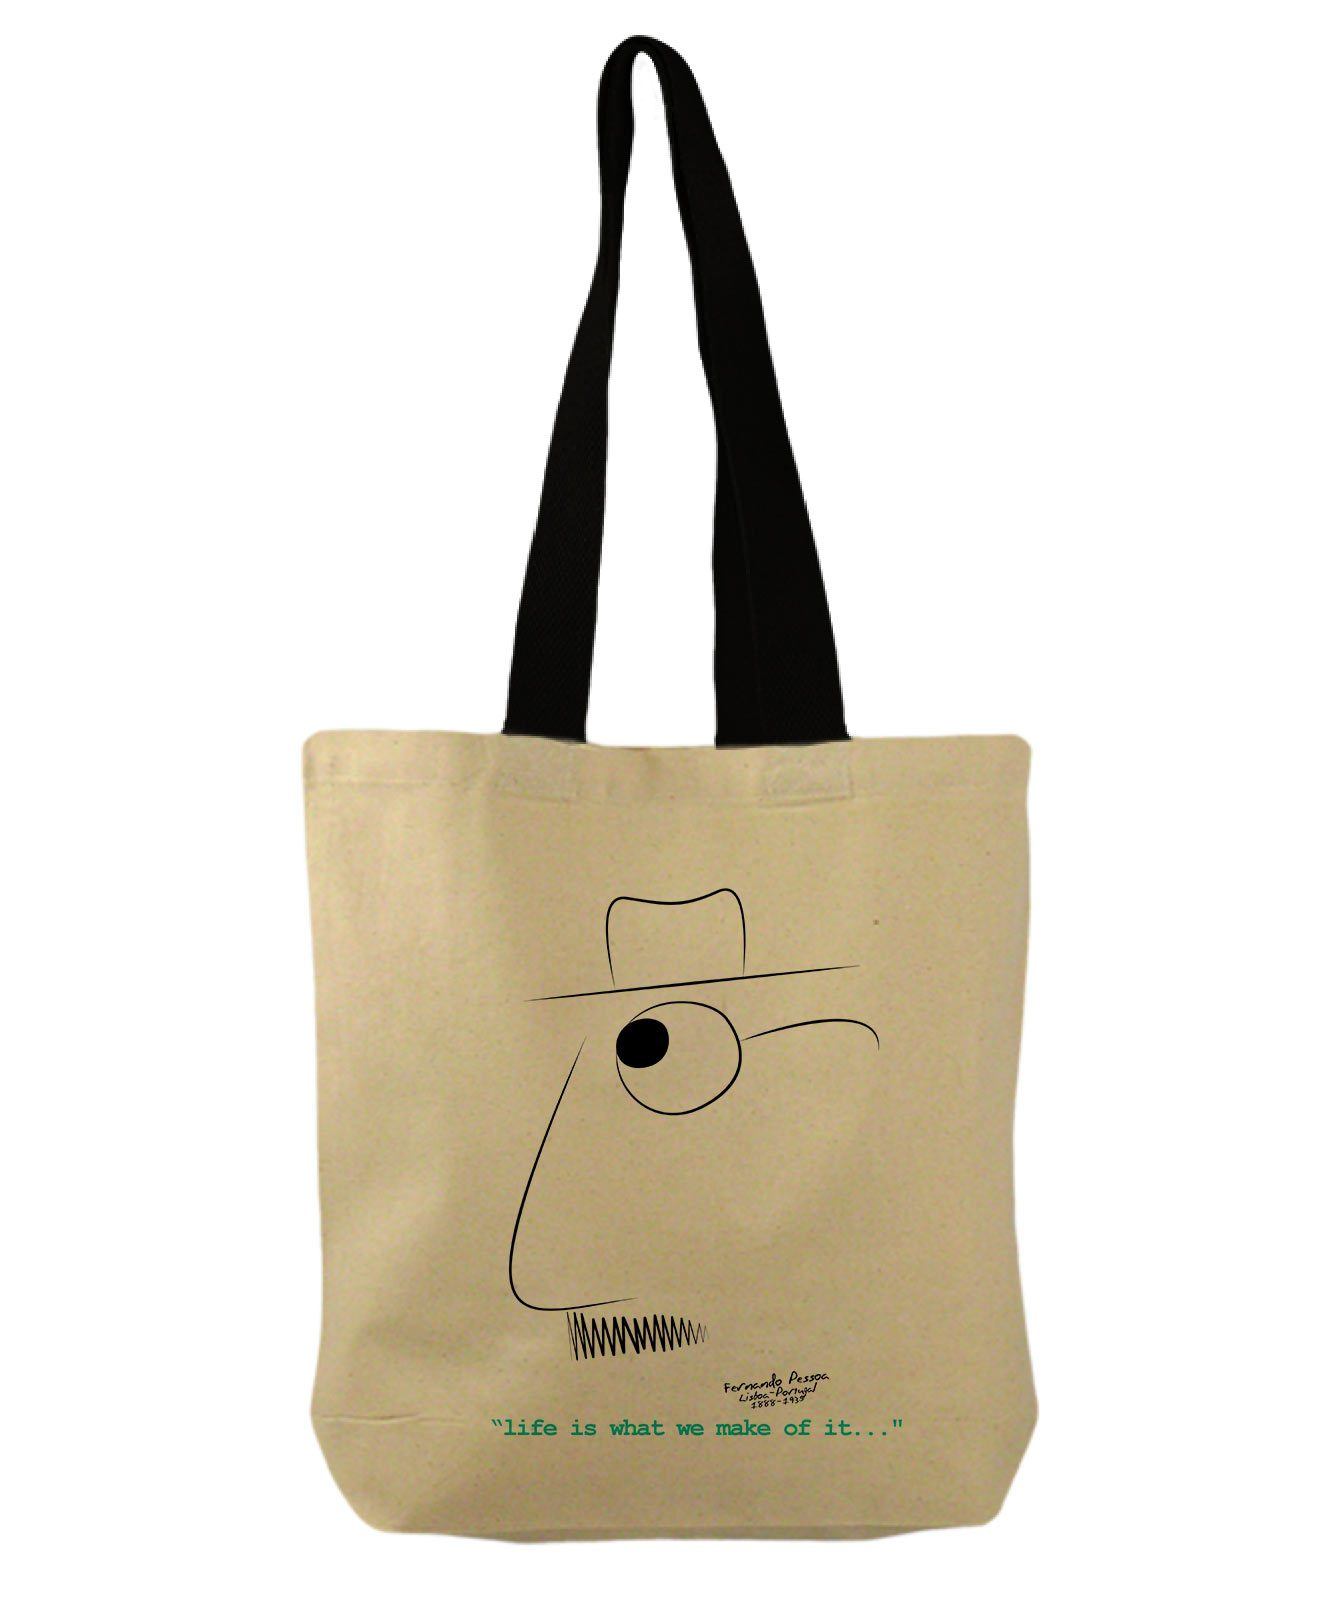 Pessoa's Life Bucket Bag with quote and the poet cartoon